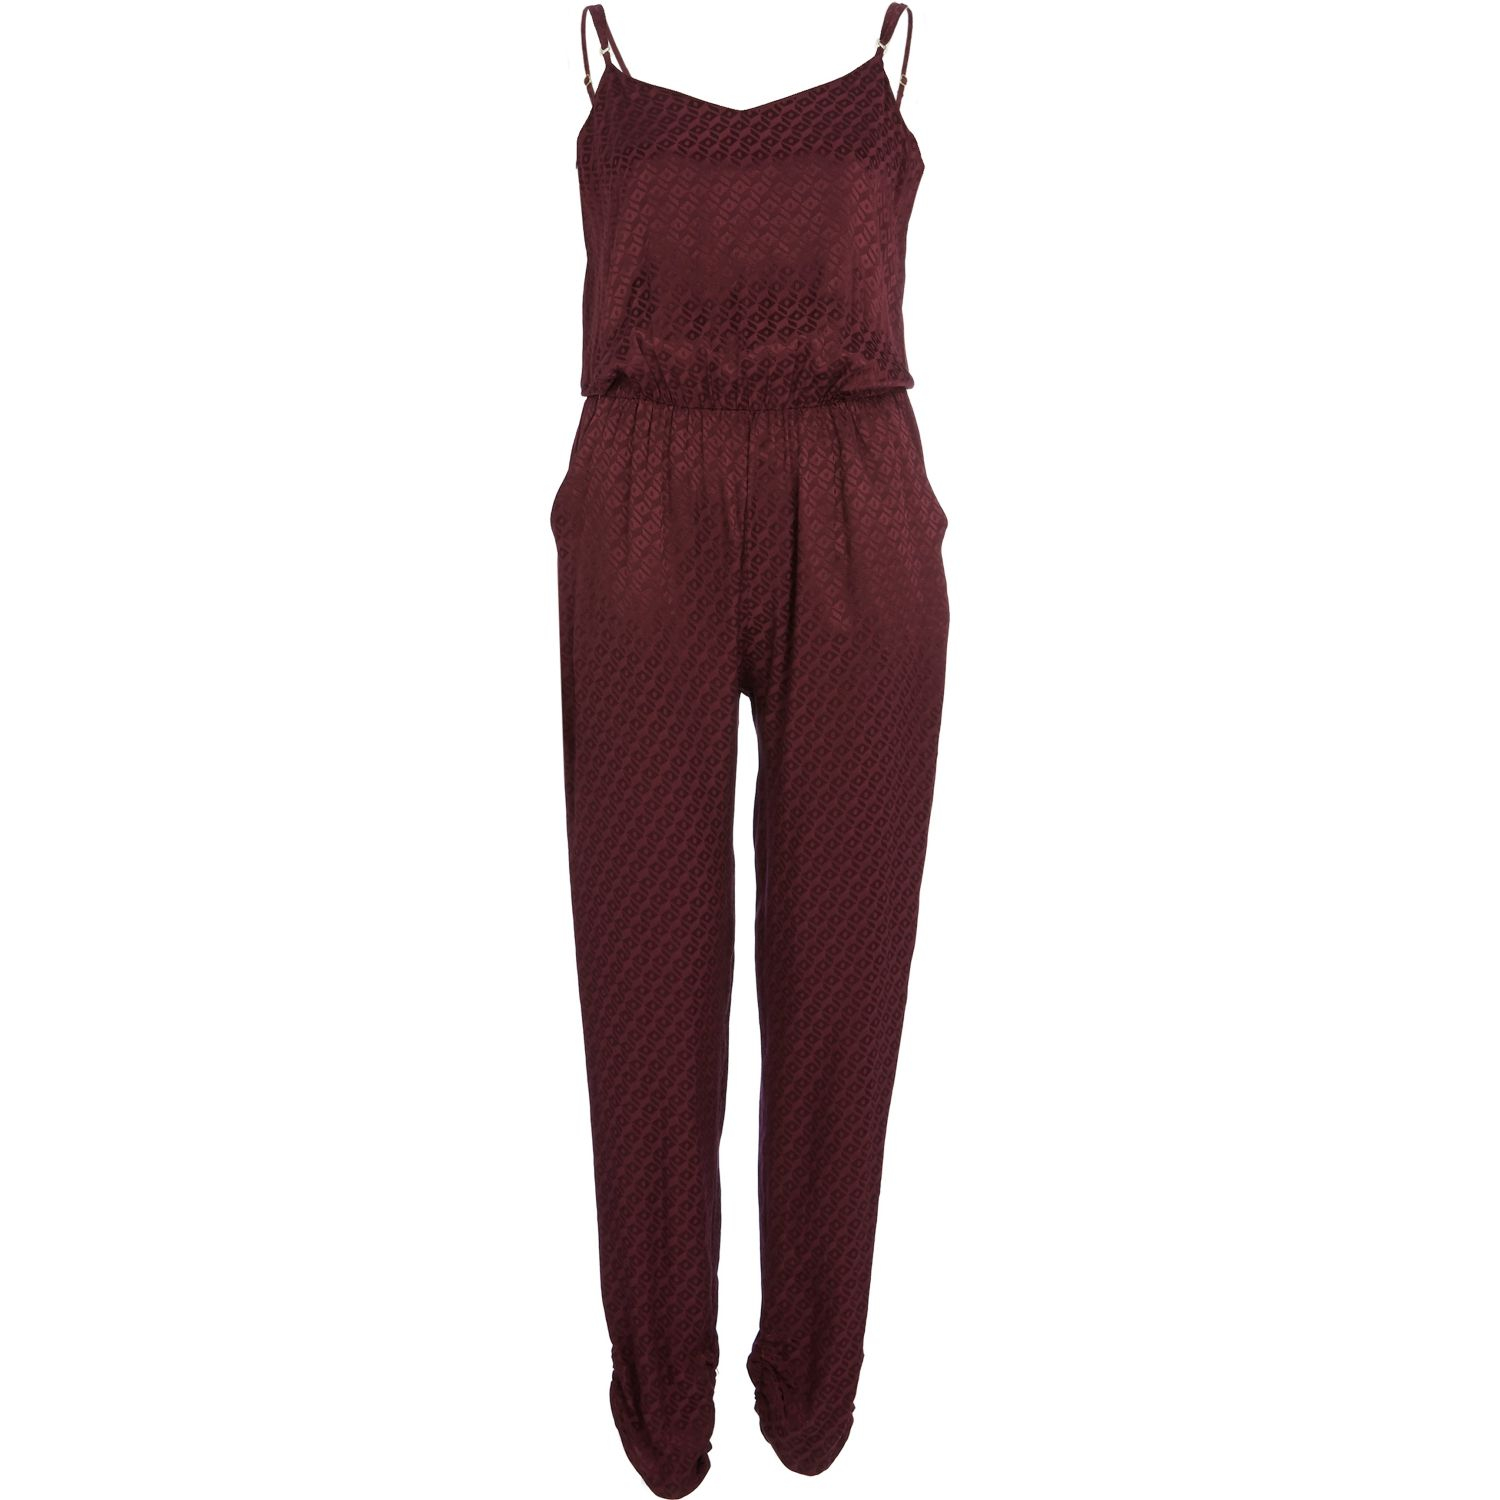 3f2417f8413 River Island Dark Red Tile Jacquard Cami Jumpsuit In Red